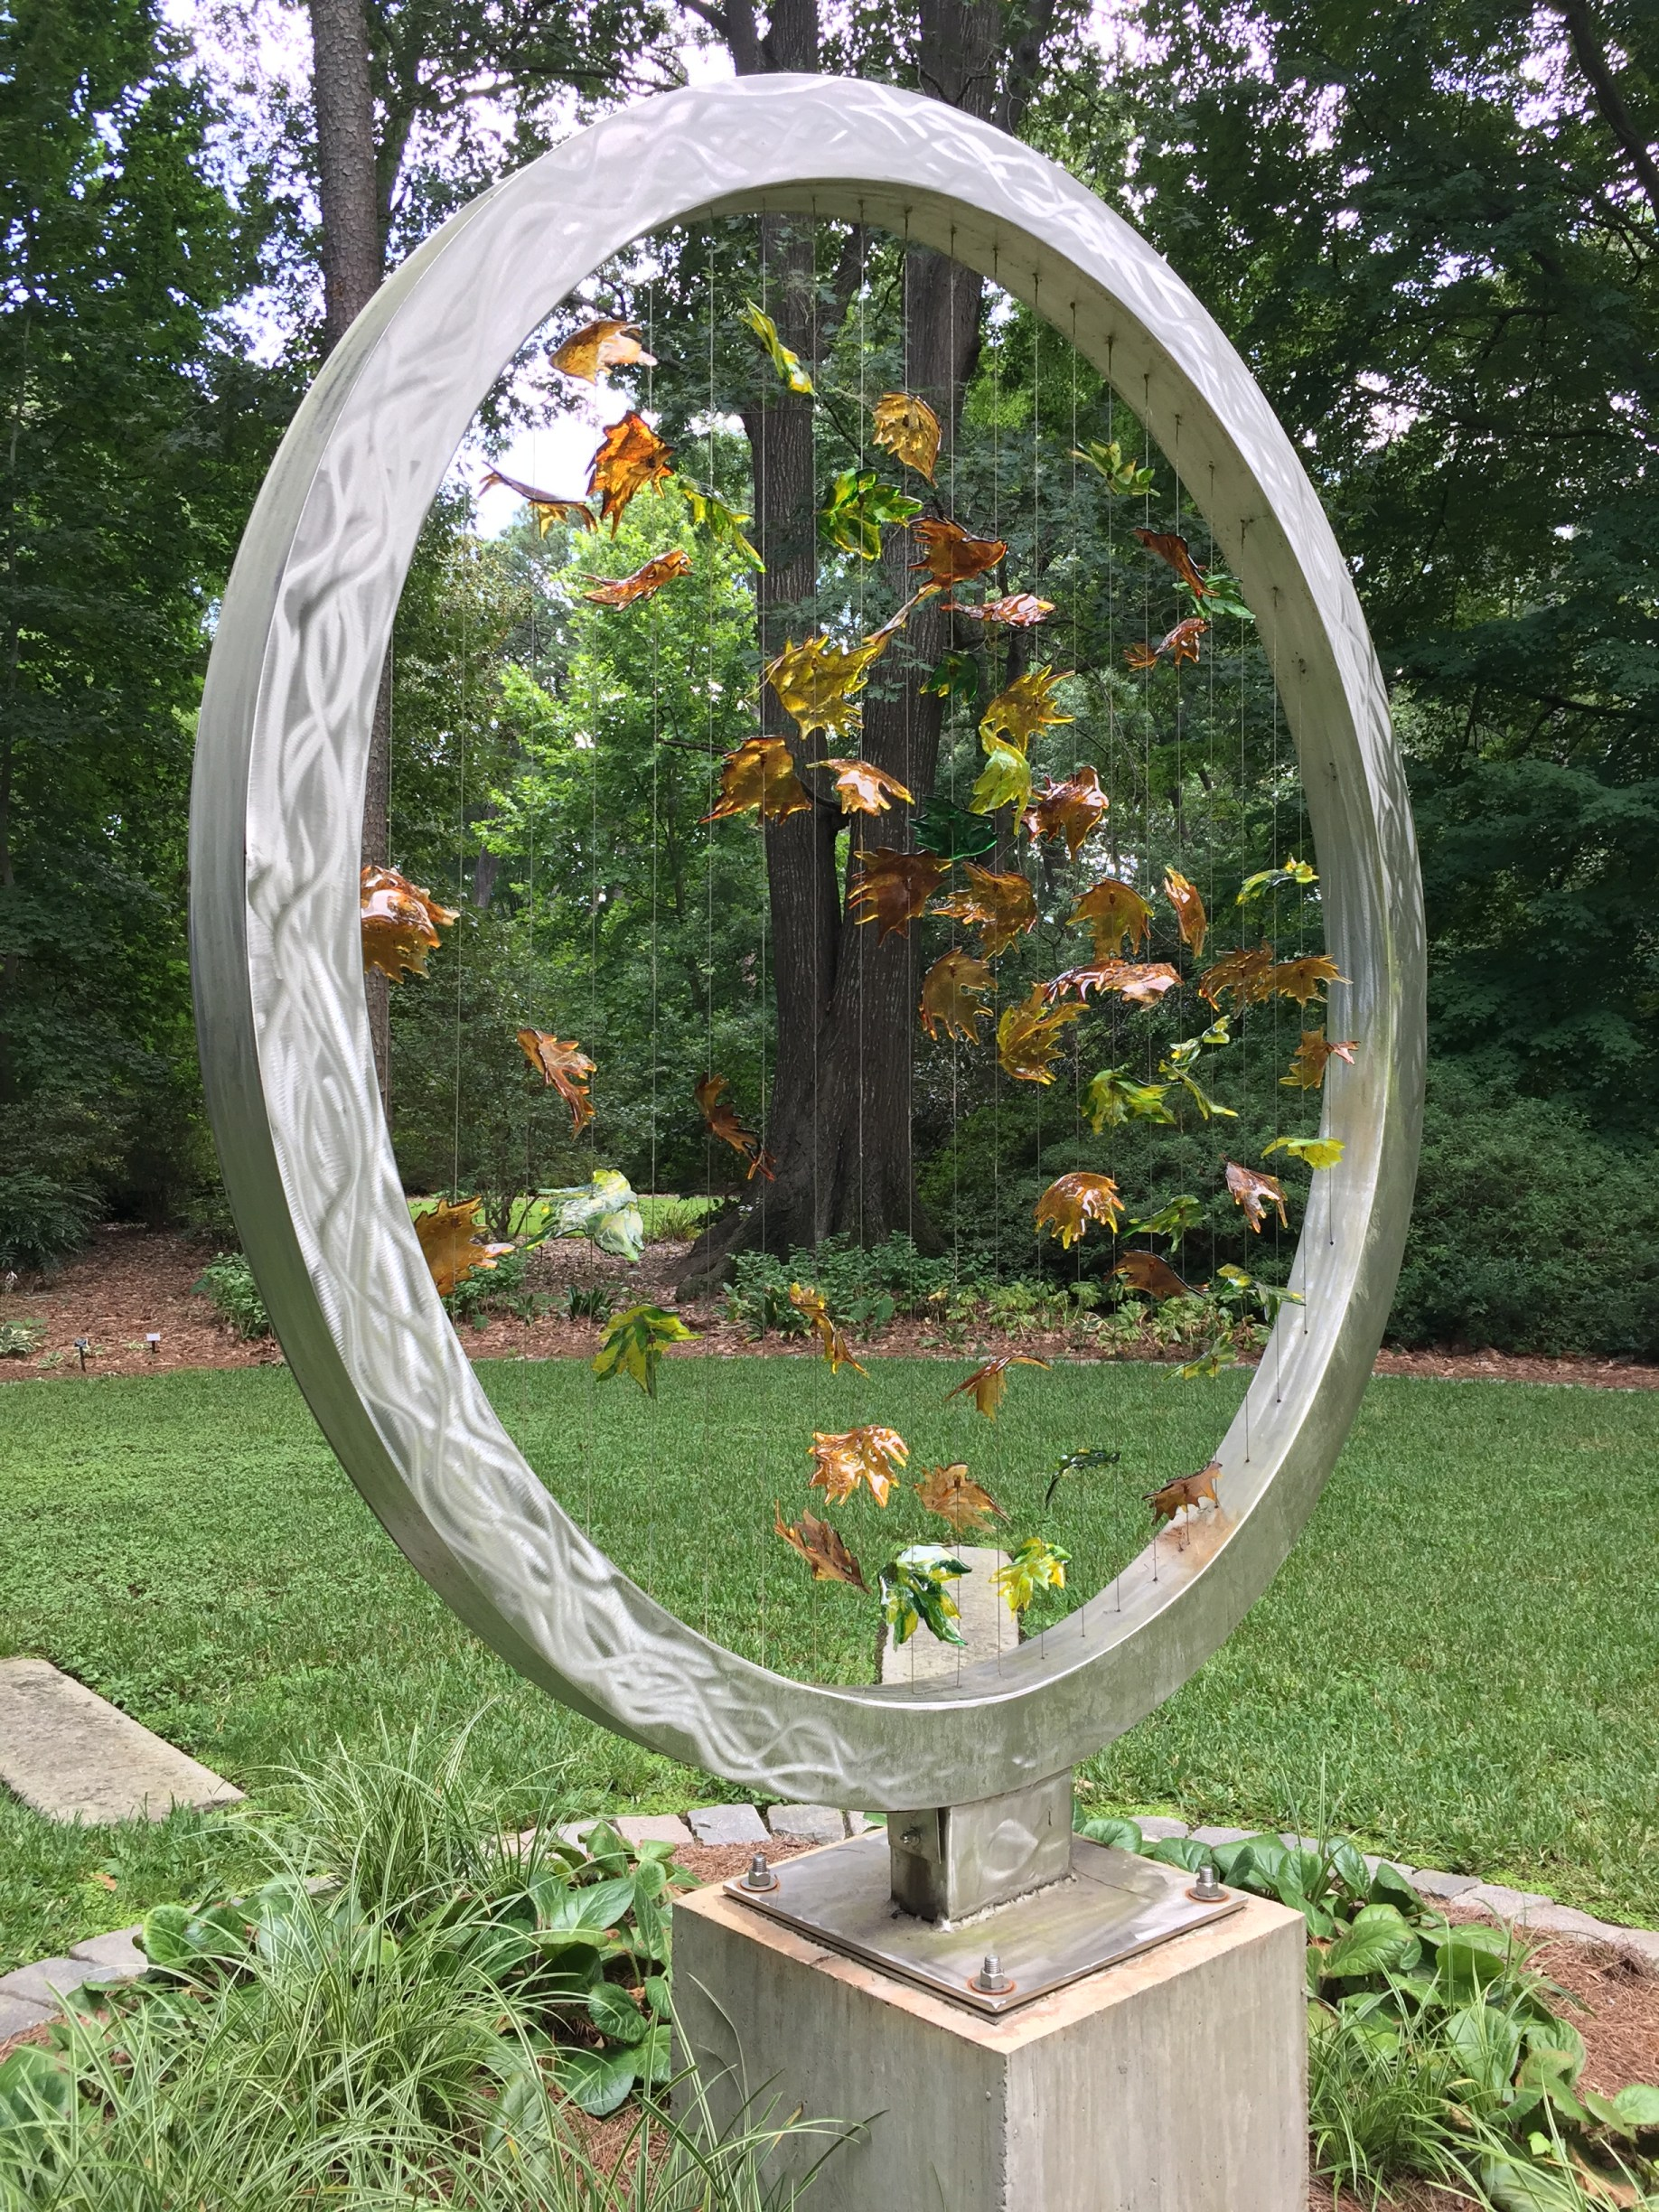 A beautiful art piece with falling leaves in the Reflection Garden. Photo © 2018 Elaine Mills.